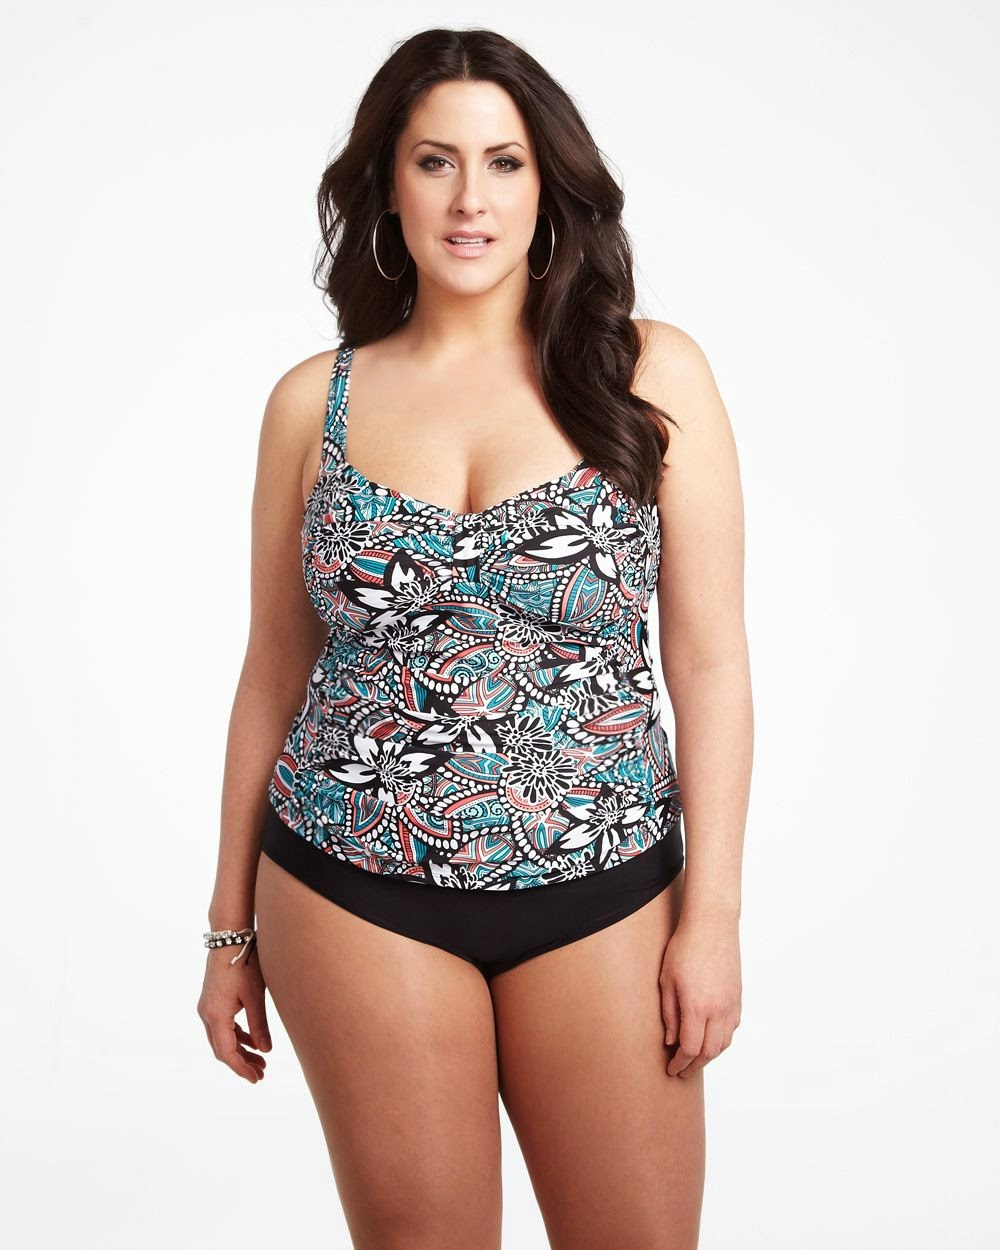 Tips On Finding The Swimsuit Ideal For Chubby Girl How